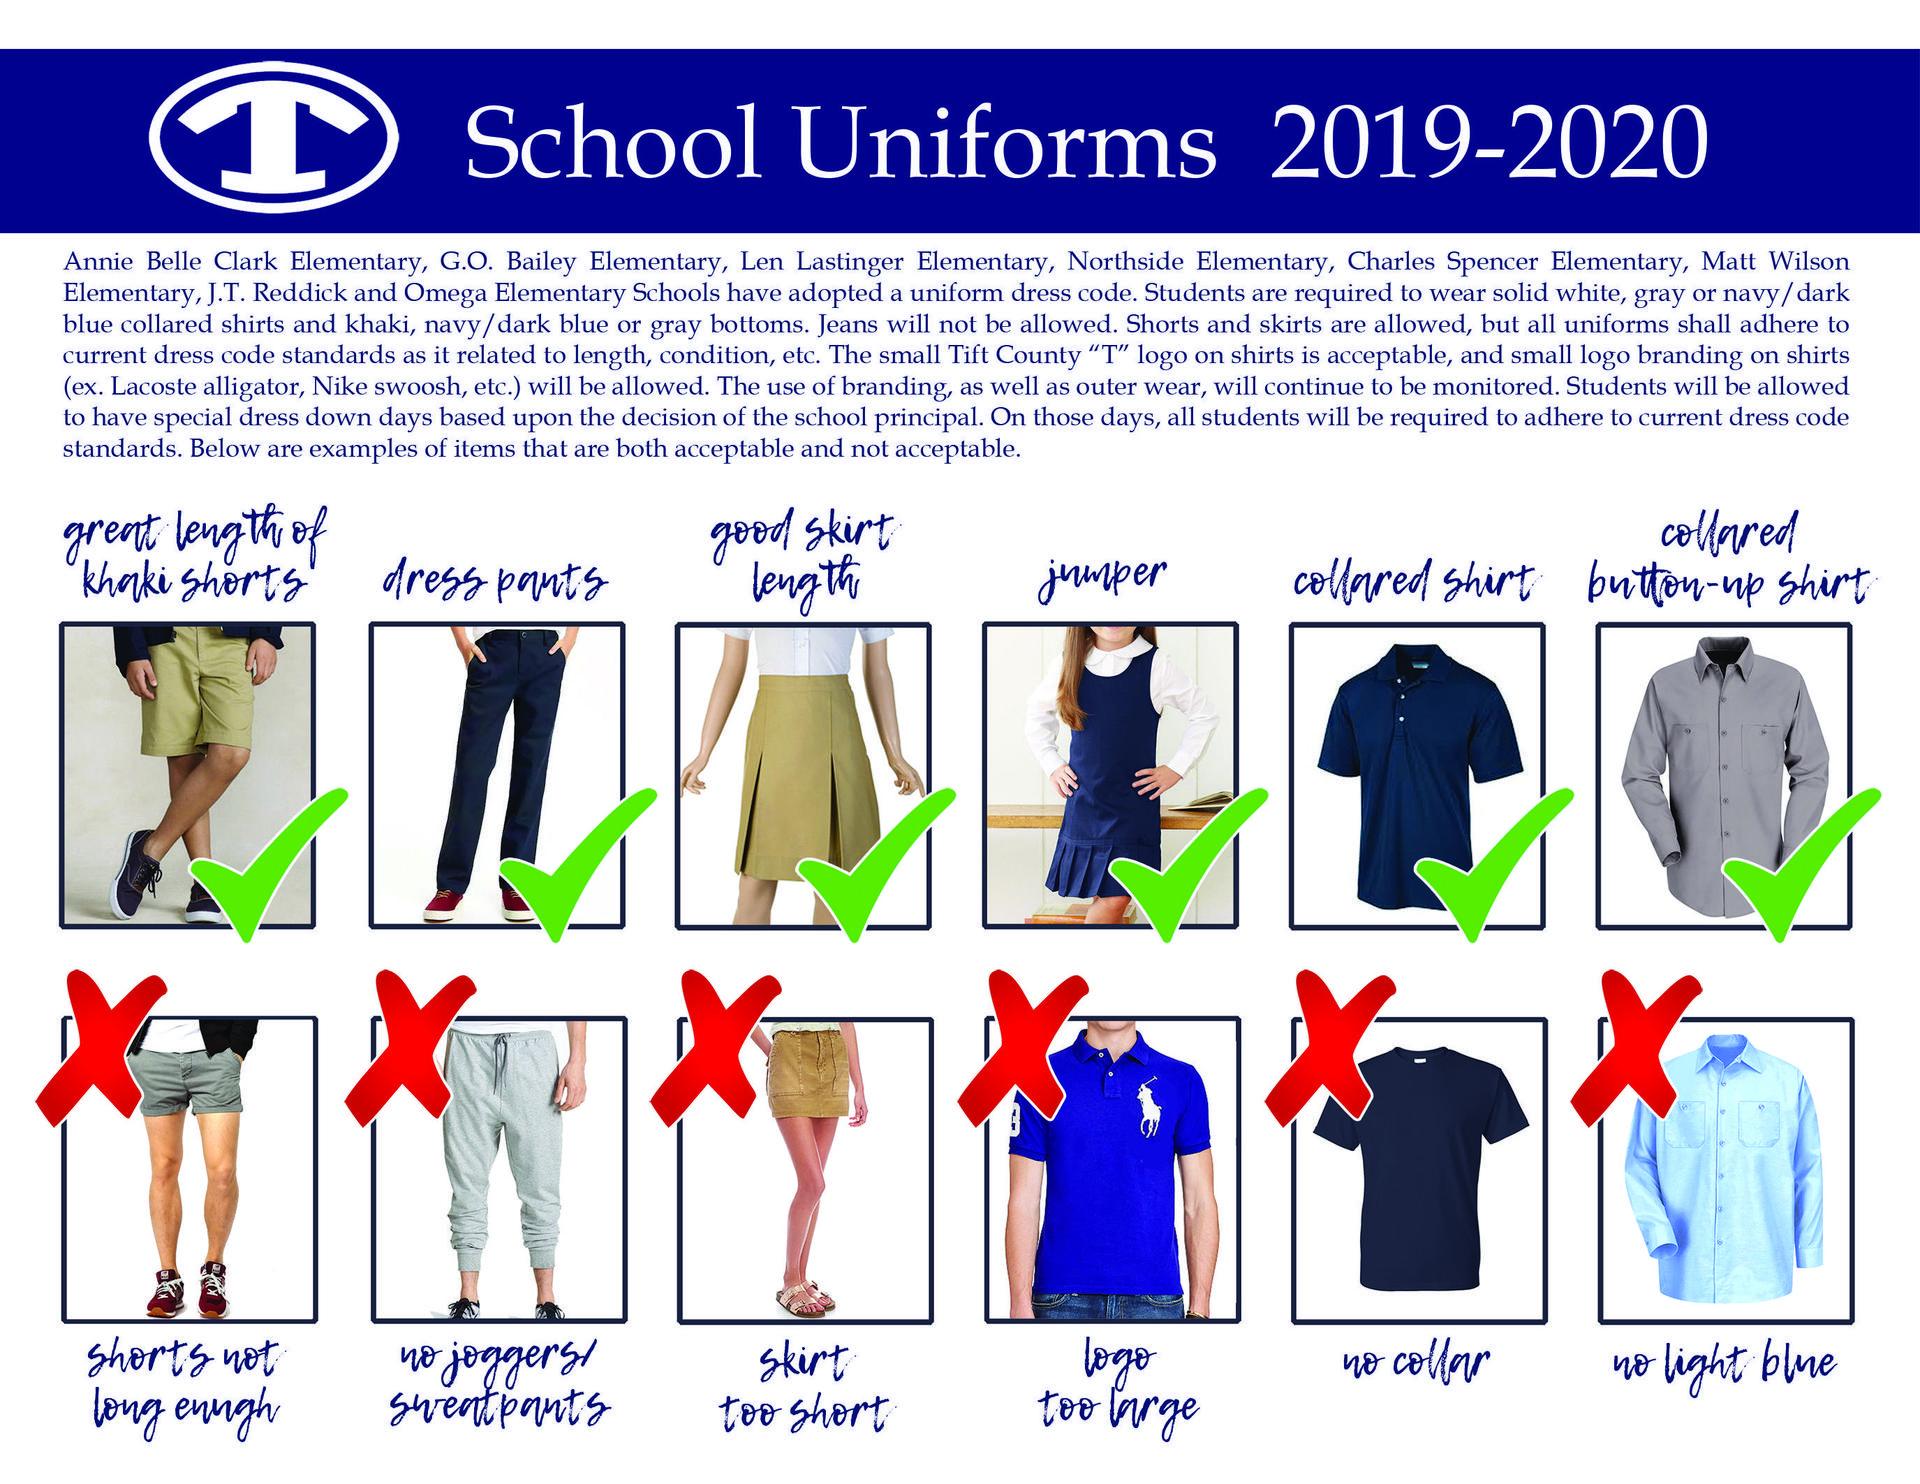 School Uniforms for  2019-2020